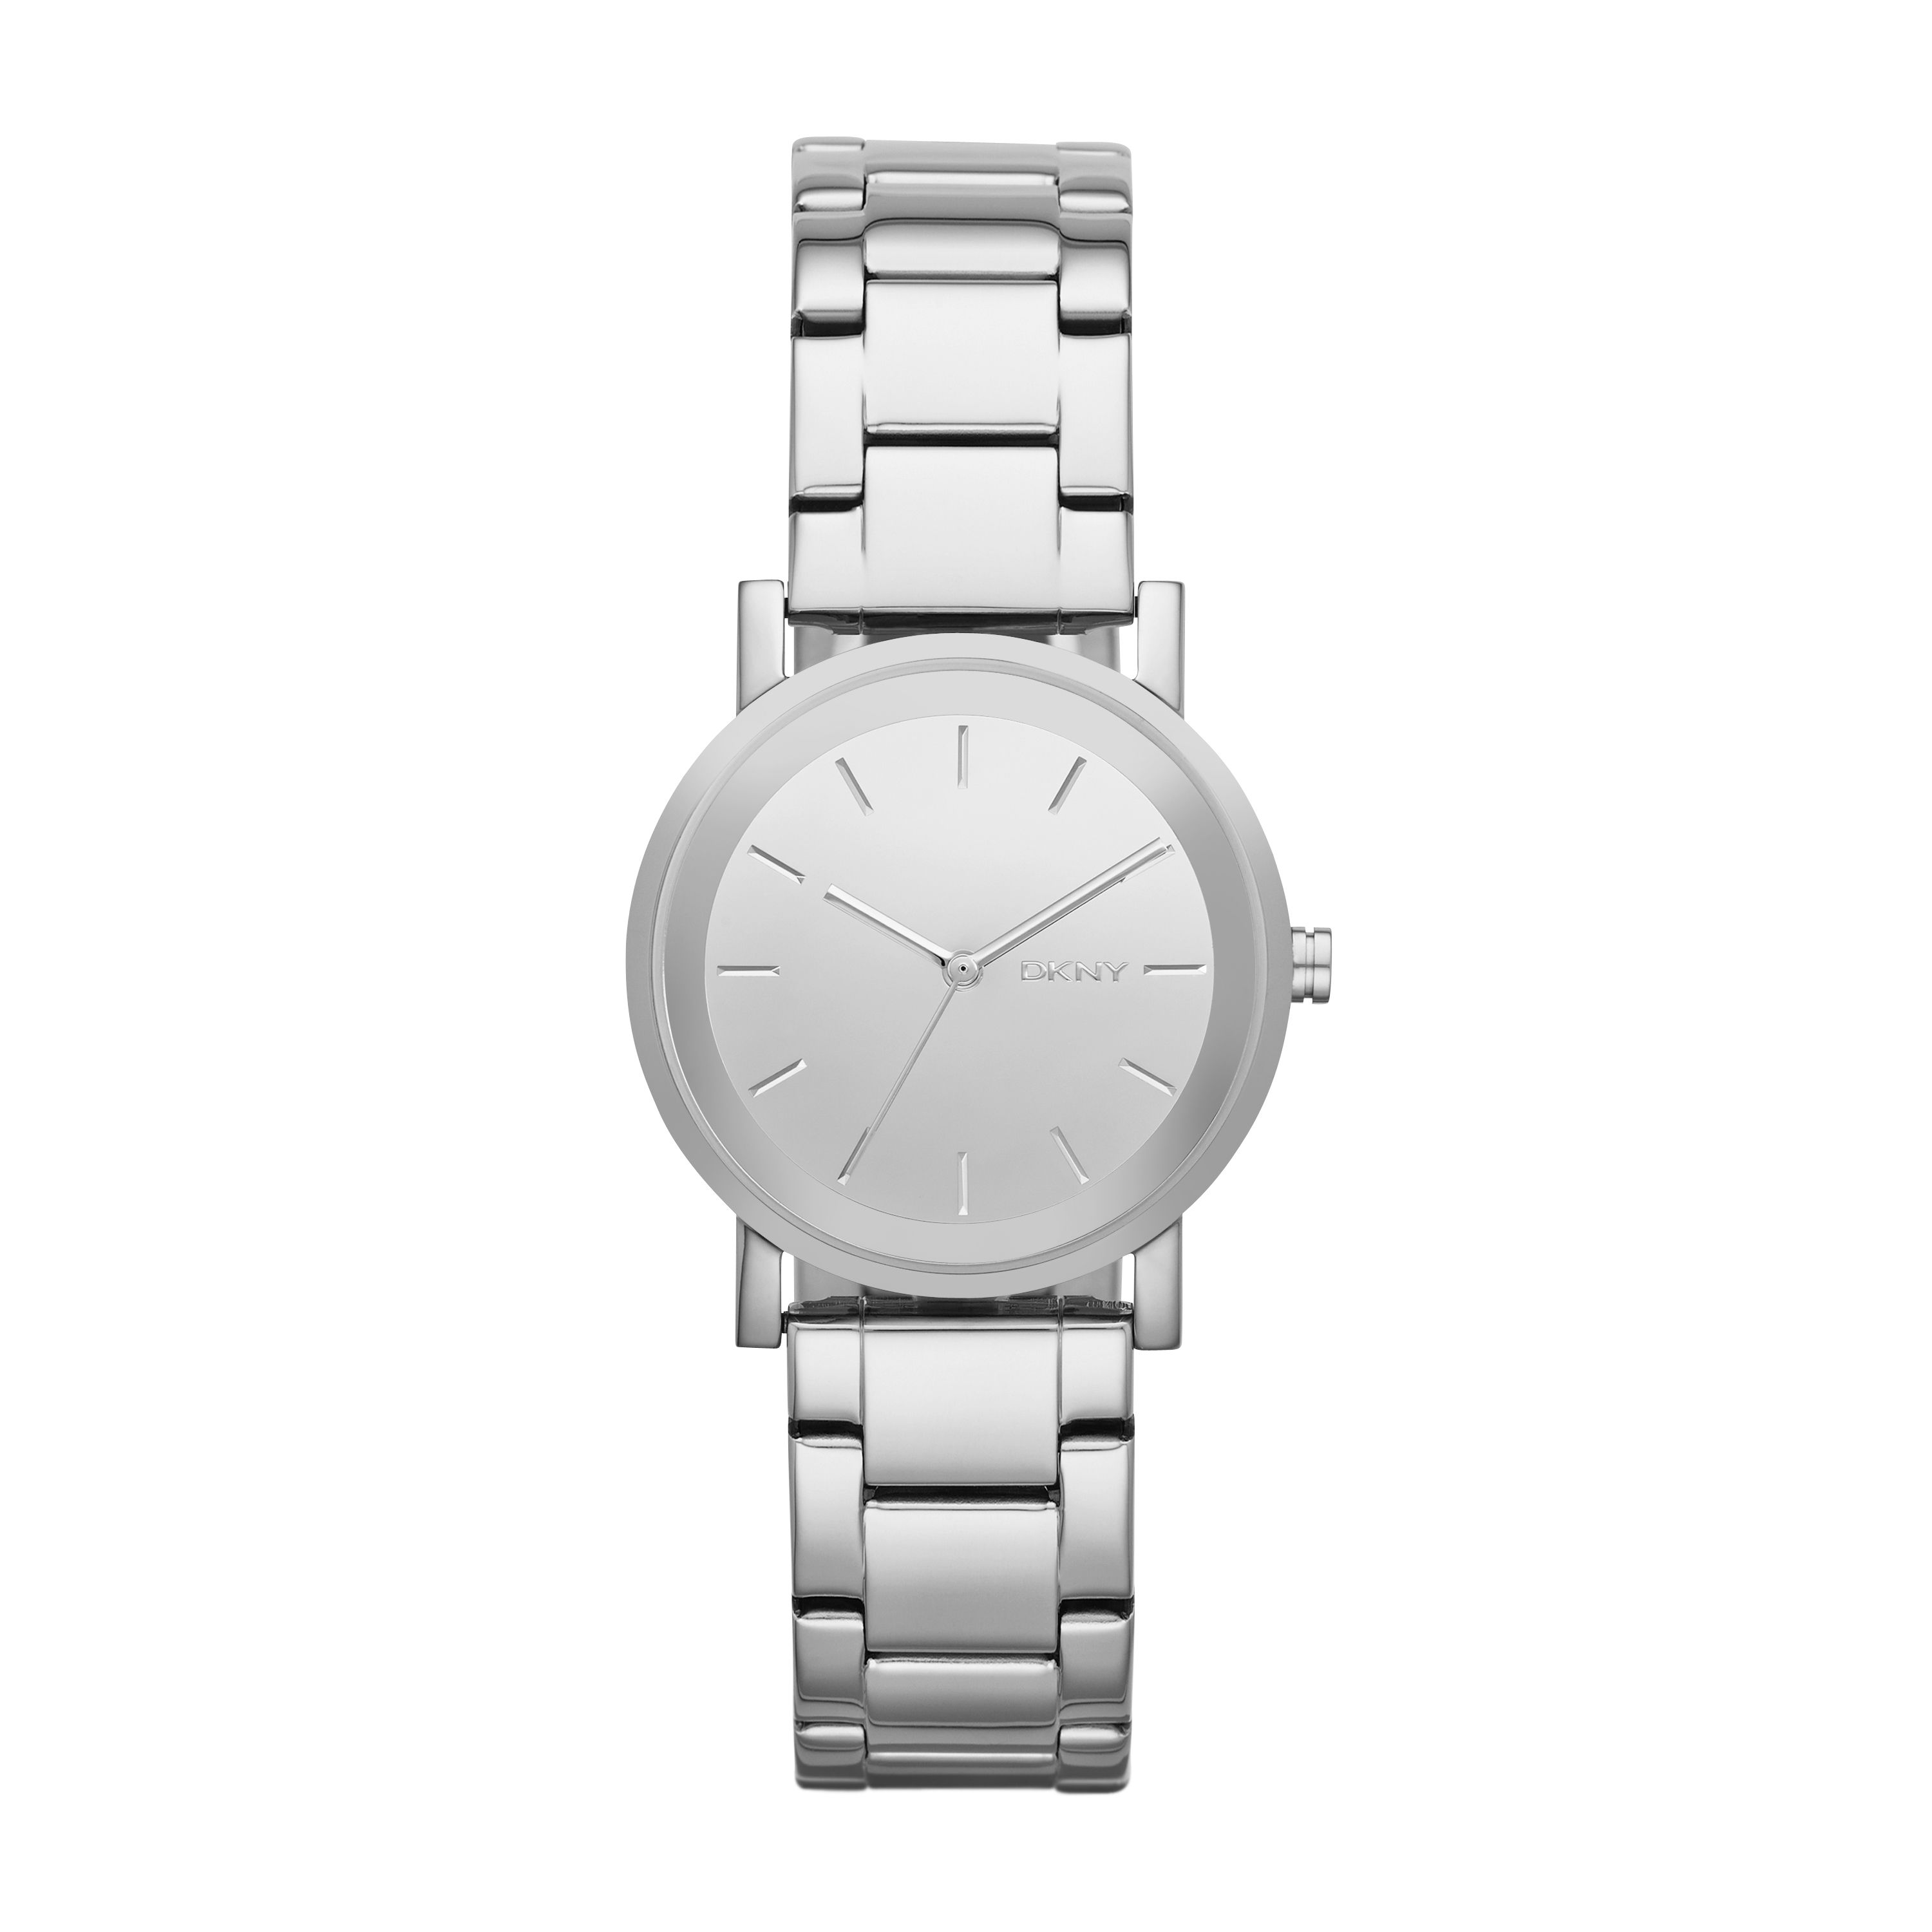 NY2177 Modern ladies silver bracelet watch